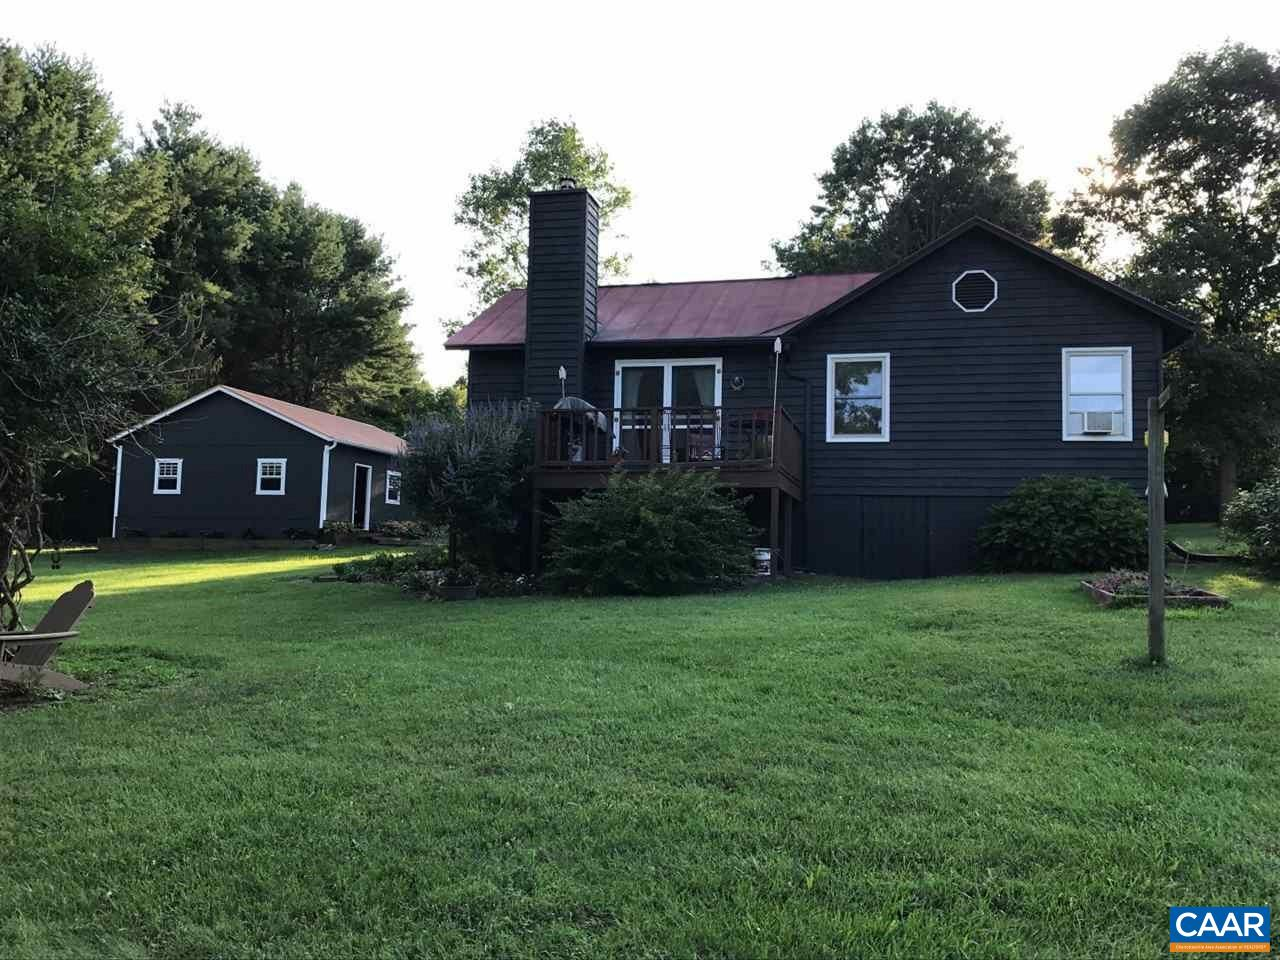 home for sale , MLS #588206, 6345 Jefferson Mill Rd